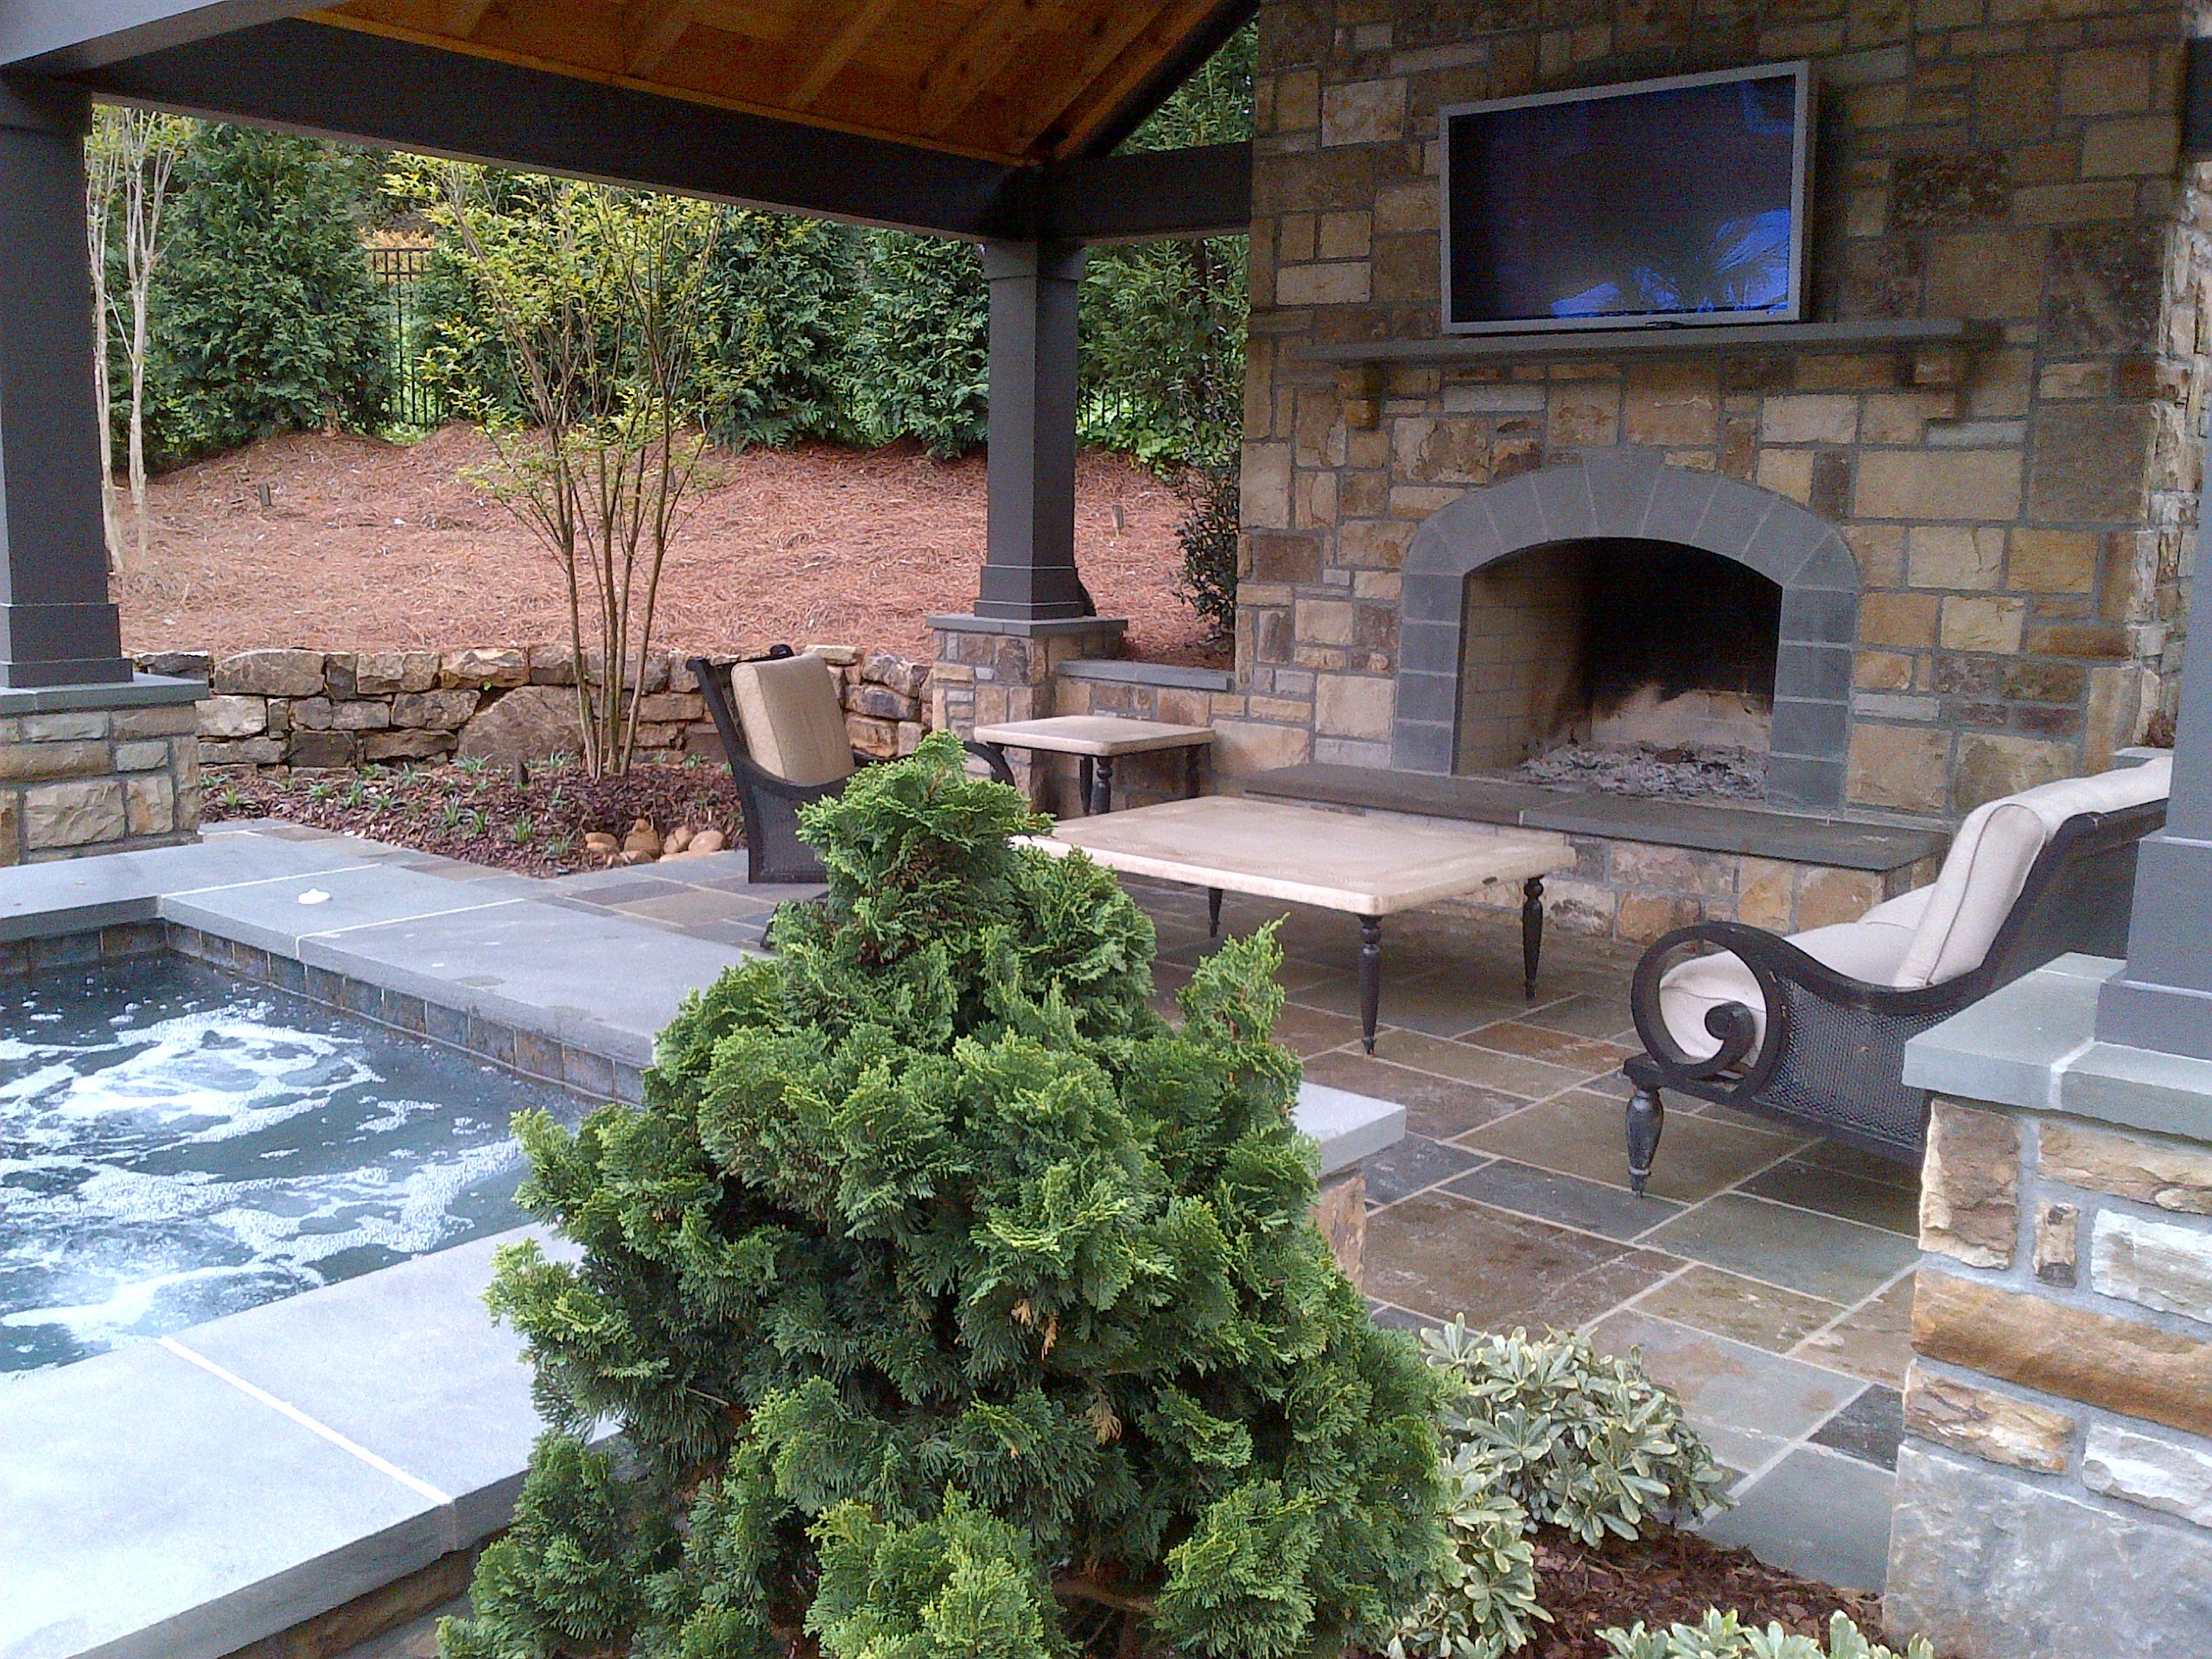 Outdoor stone fireplace with pool